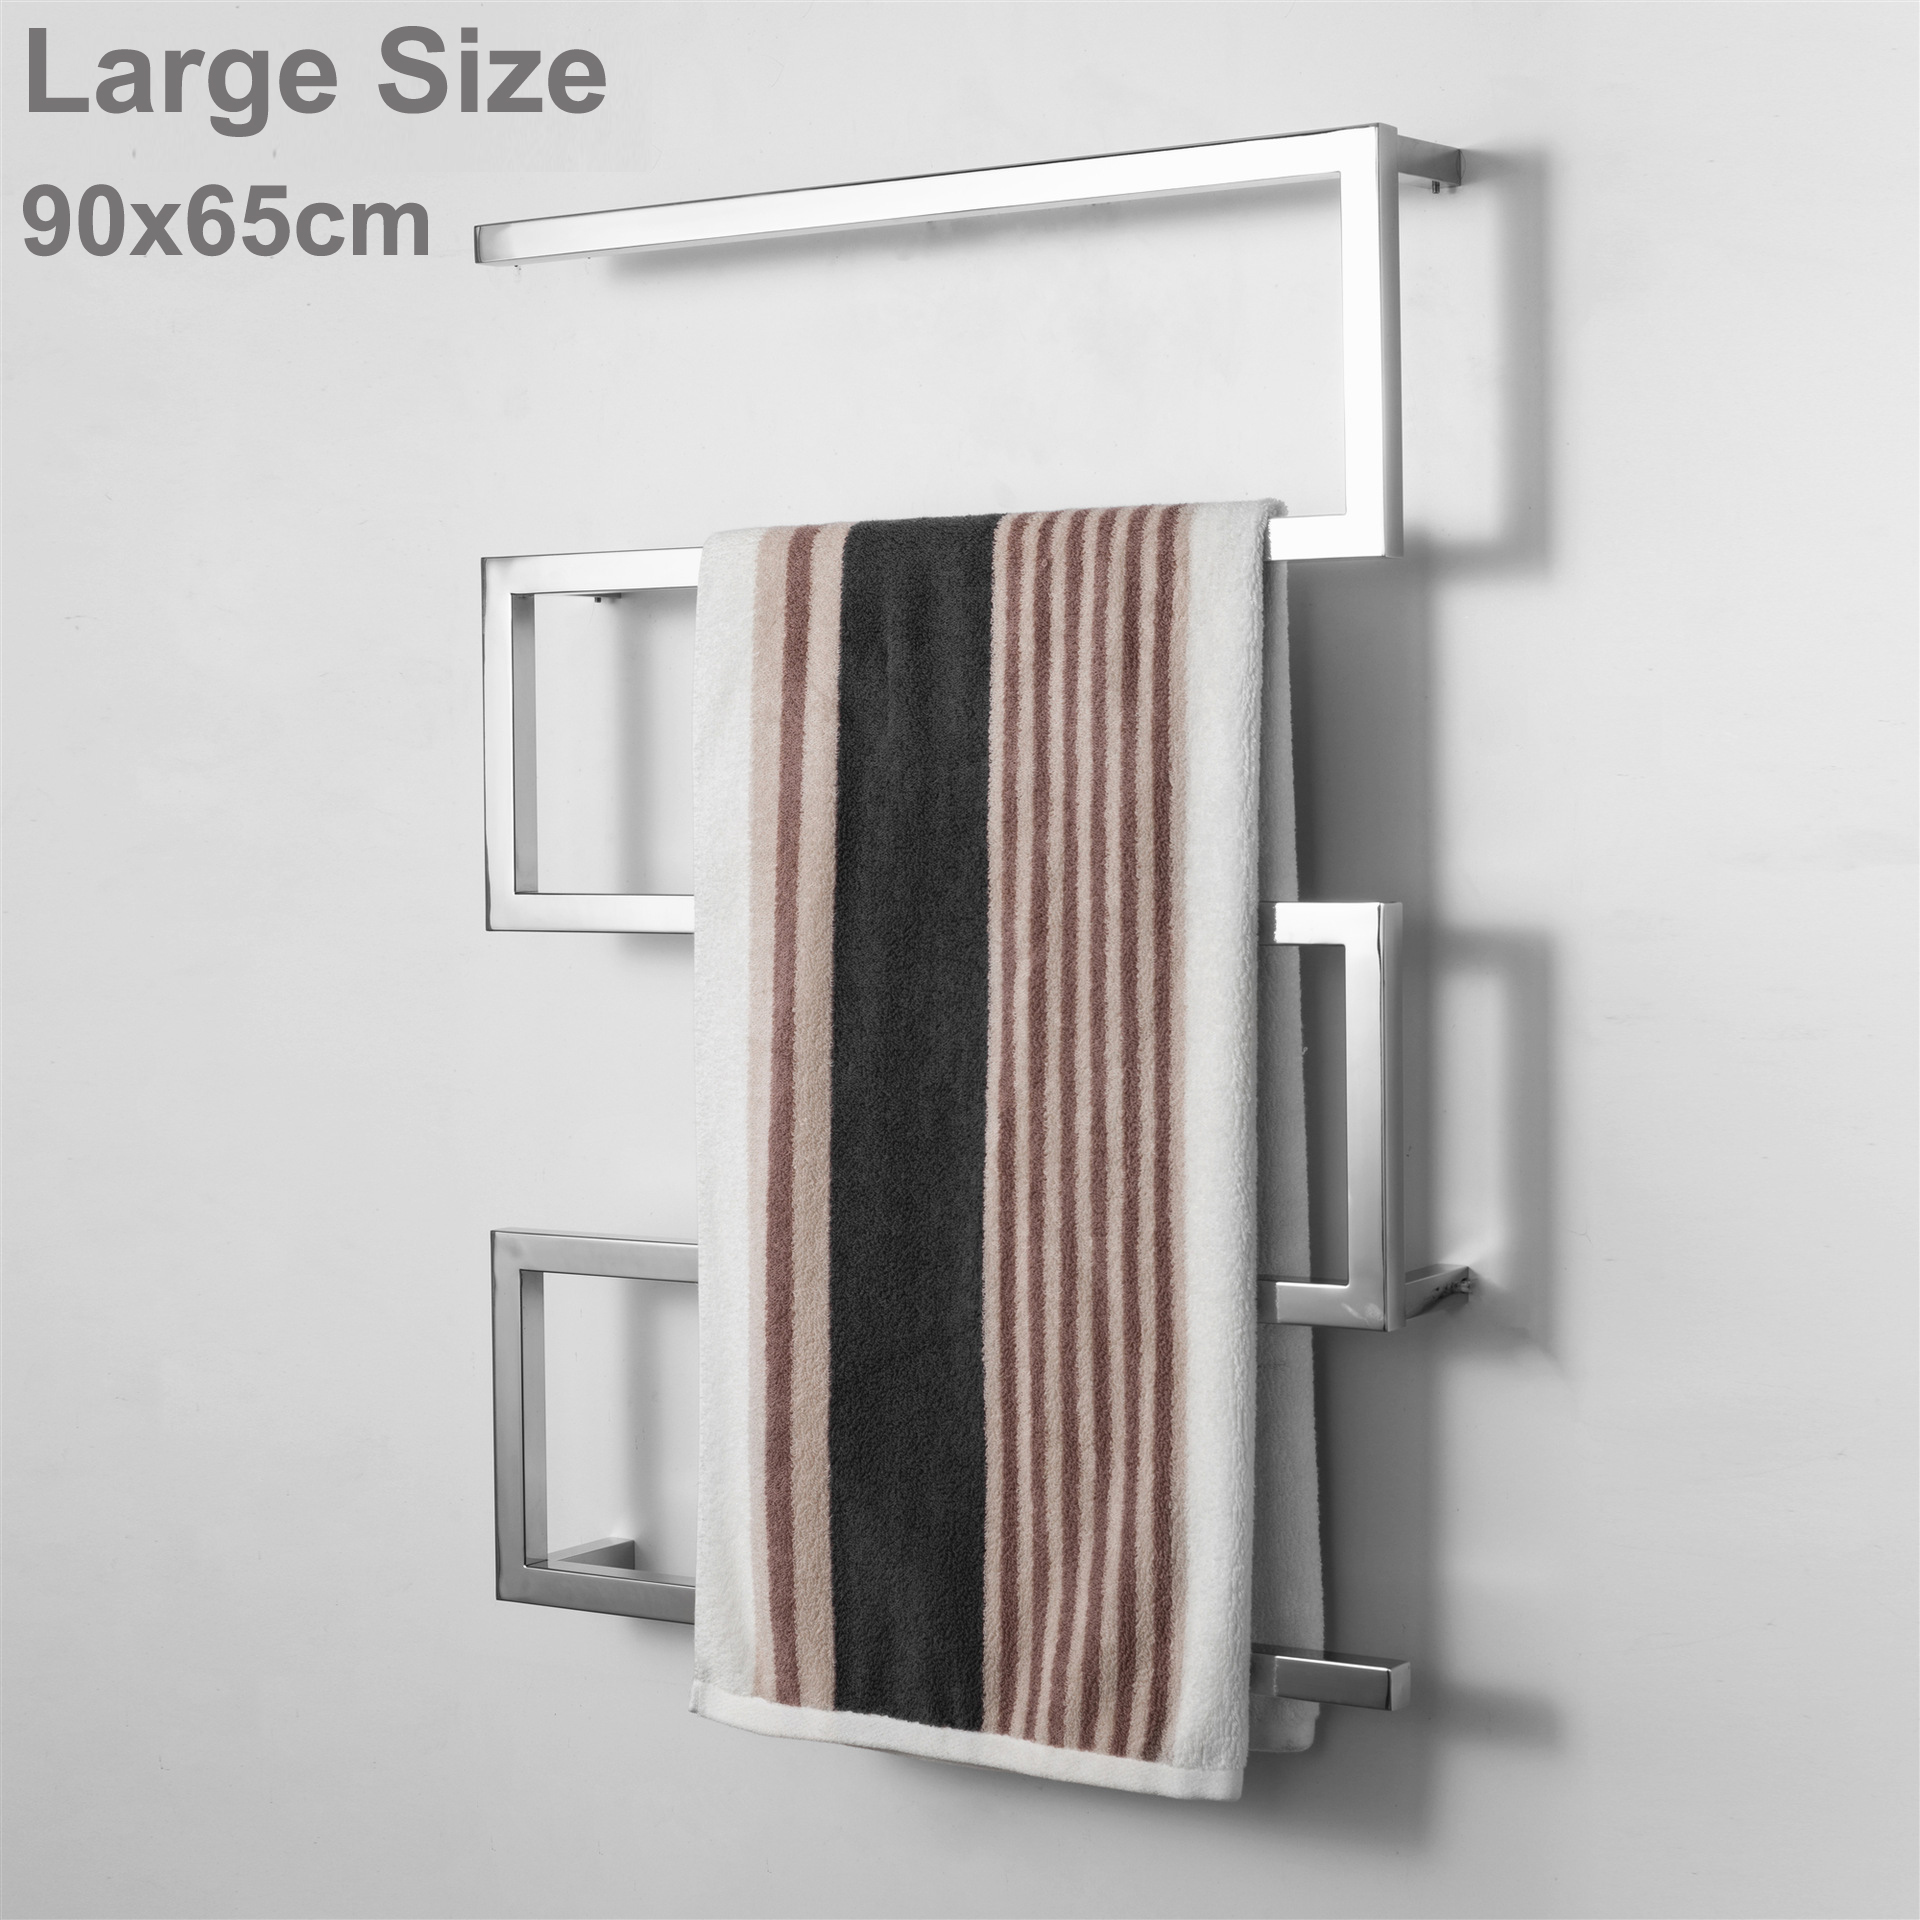 Enthusiastic Hide Wall Install Bow Shaped Bathroom Electric Towel Rack 90x65cm 304 Stainless Steel Shower Room Heated Towel Warmer Rack Pure And Mild Flavor